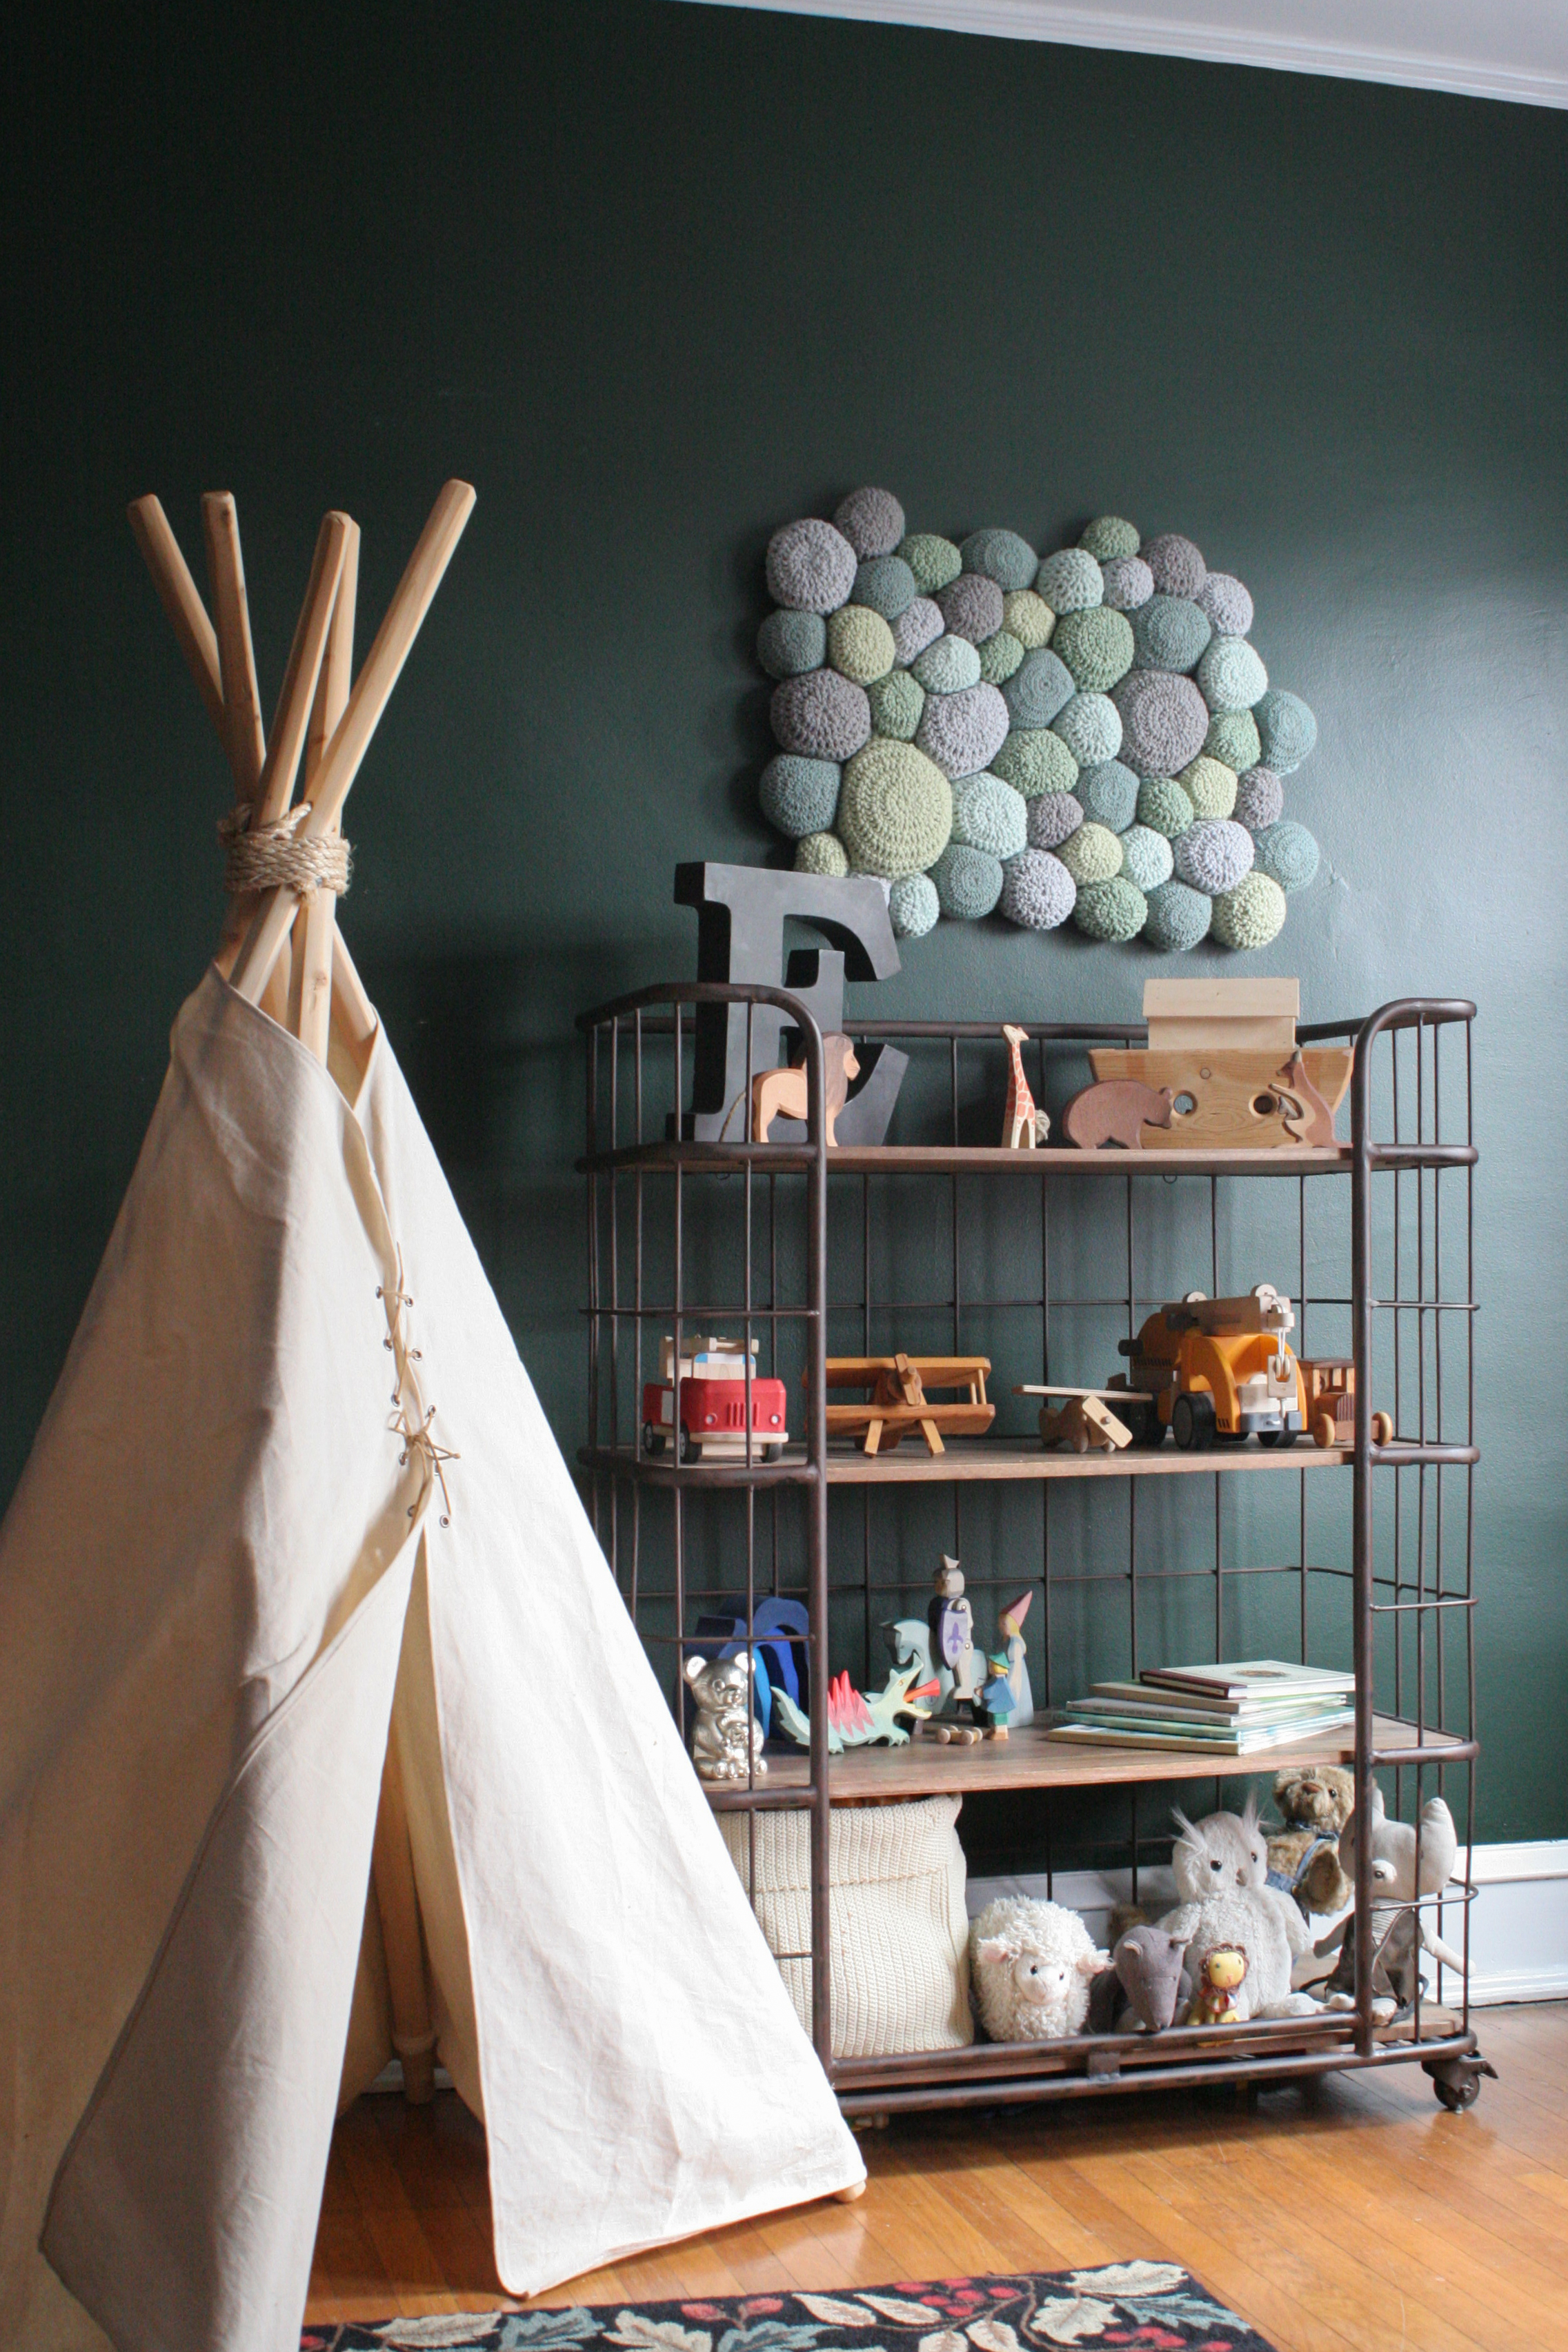 Sustainable Sheepskin as Wall Decor in Children's Room